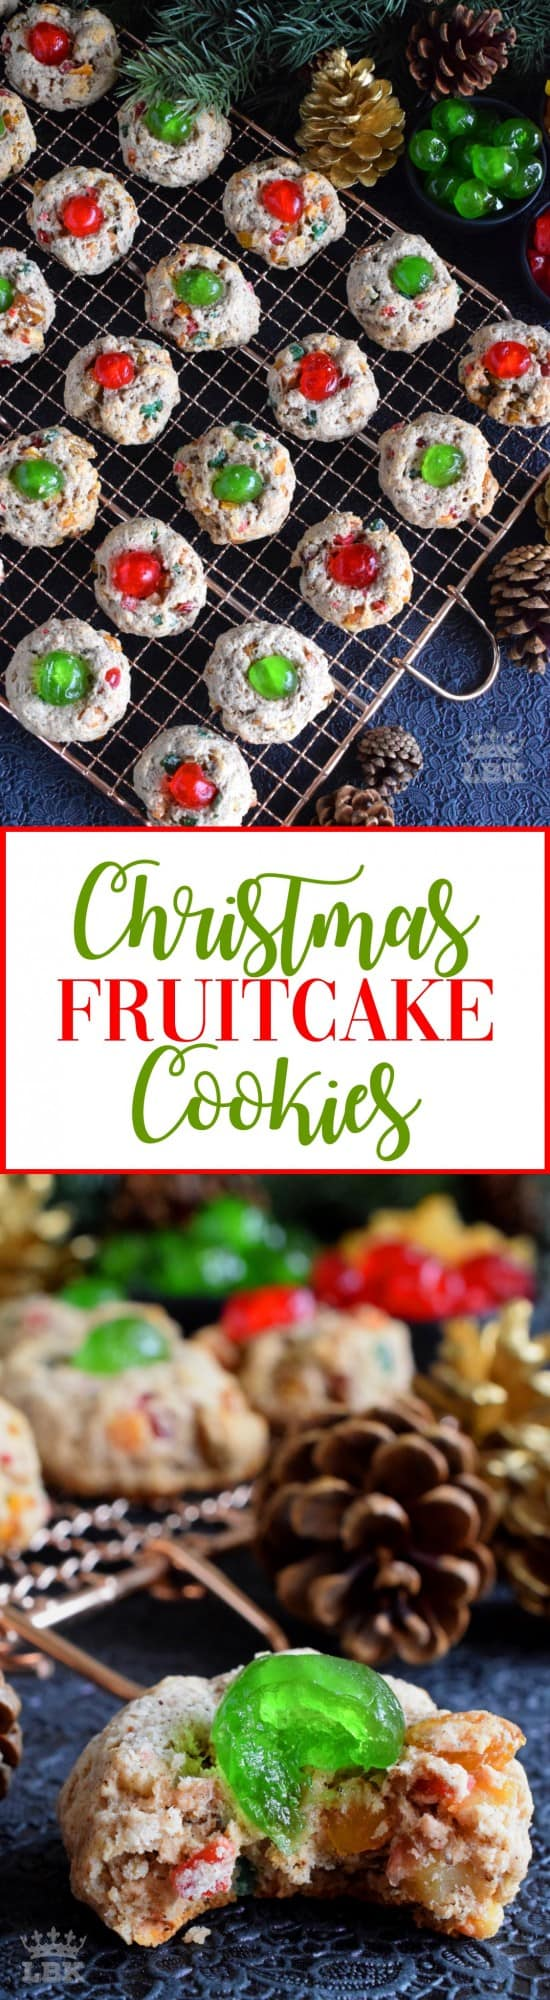 Christmas Fruitcake Cookies - These sugar-coated cookies are a great way to pack the flavour and texture of a Christmas fruitcake into a beautiful holiday cookie! #fruitcake #cookies #christmas #holiday #baking